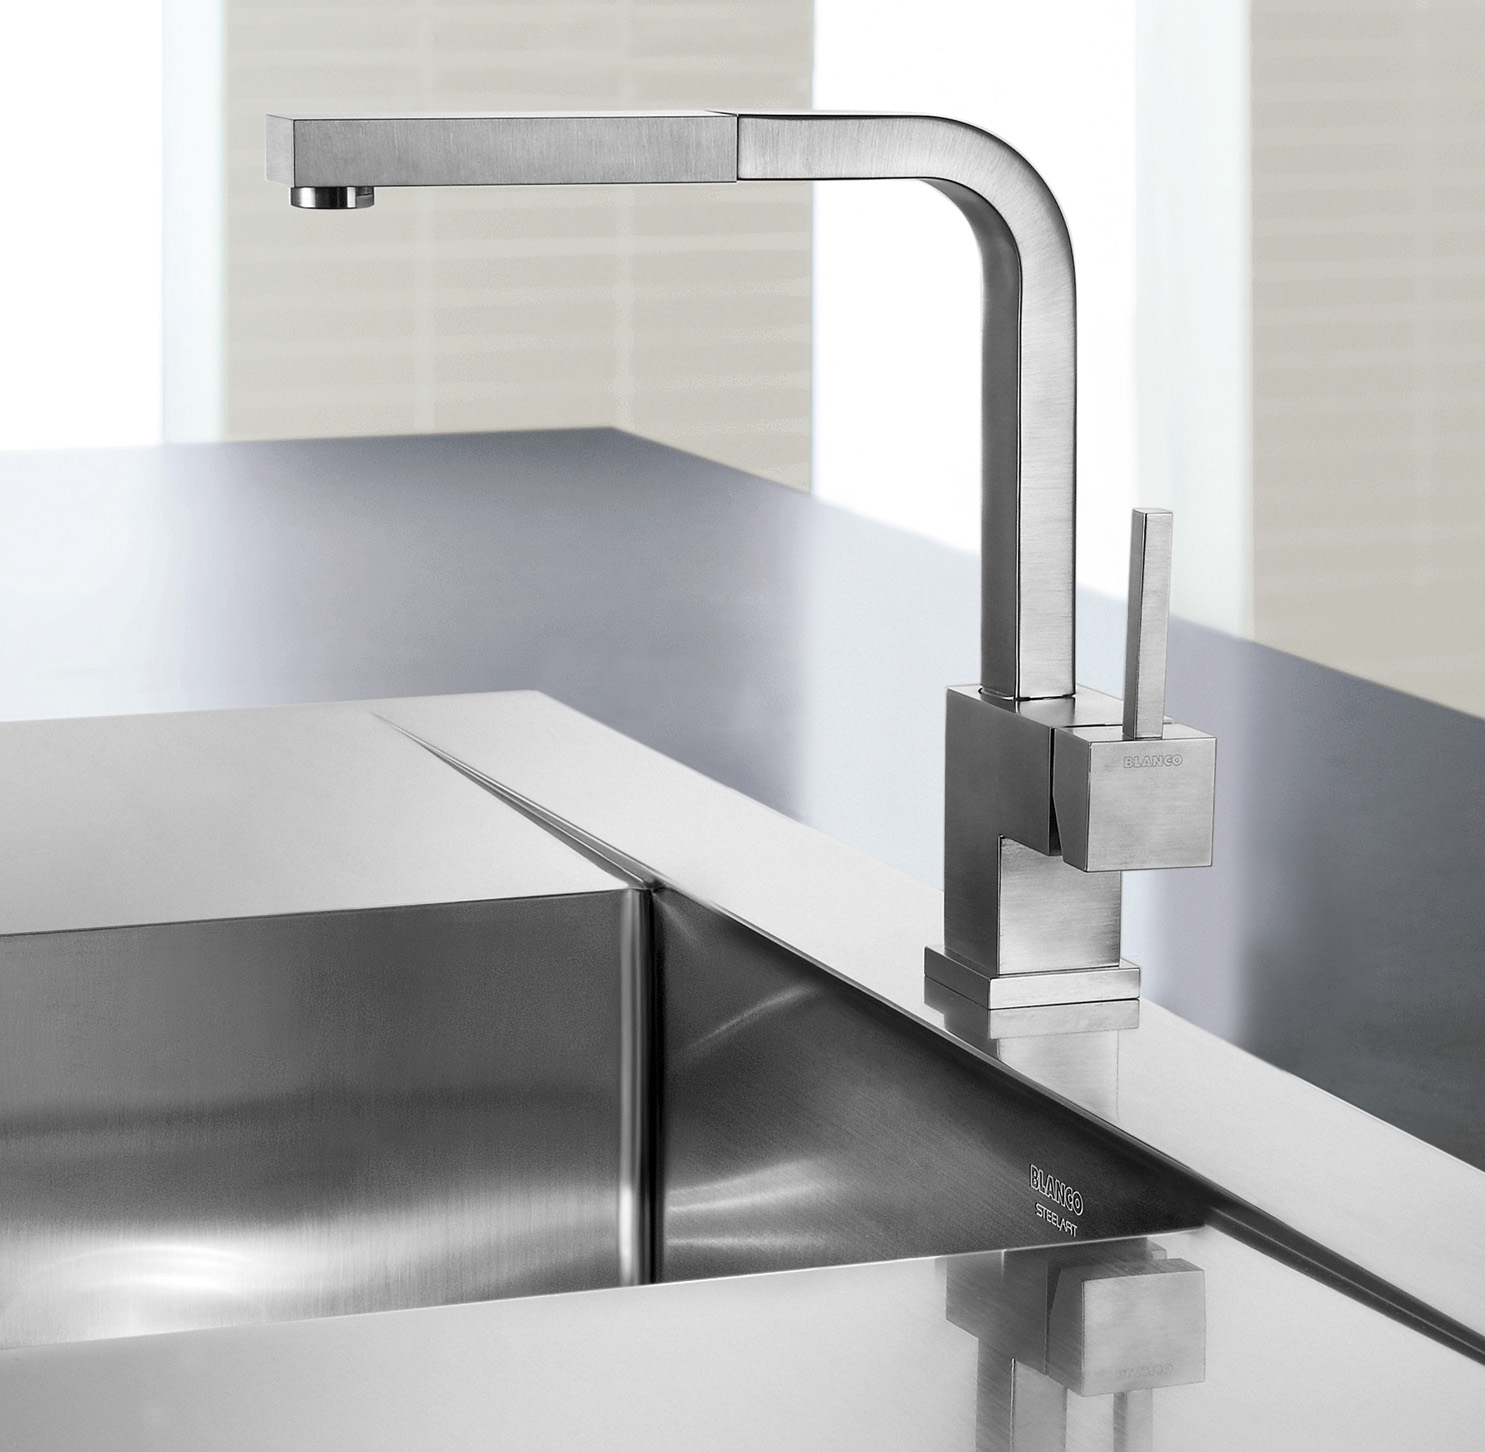 Ideas, kitchen inexpensive costco kitchen faucets for your best kitchen pertaining to proportions 1485 x 1452  .